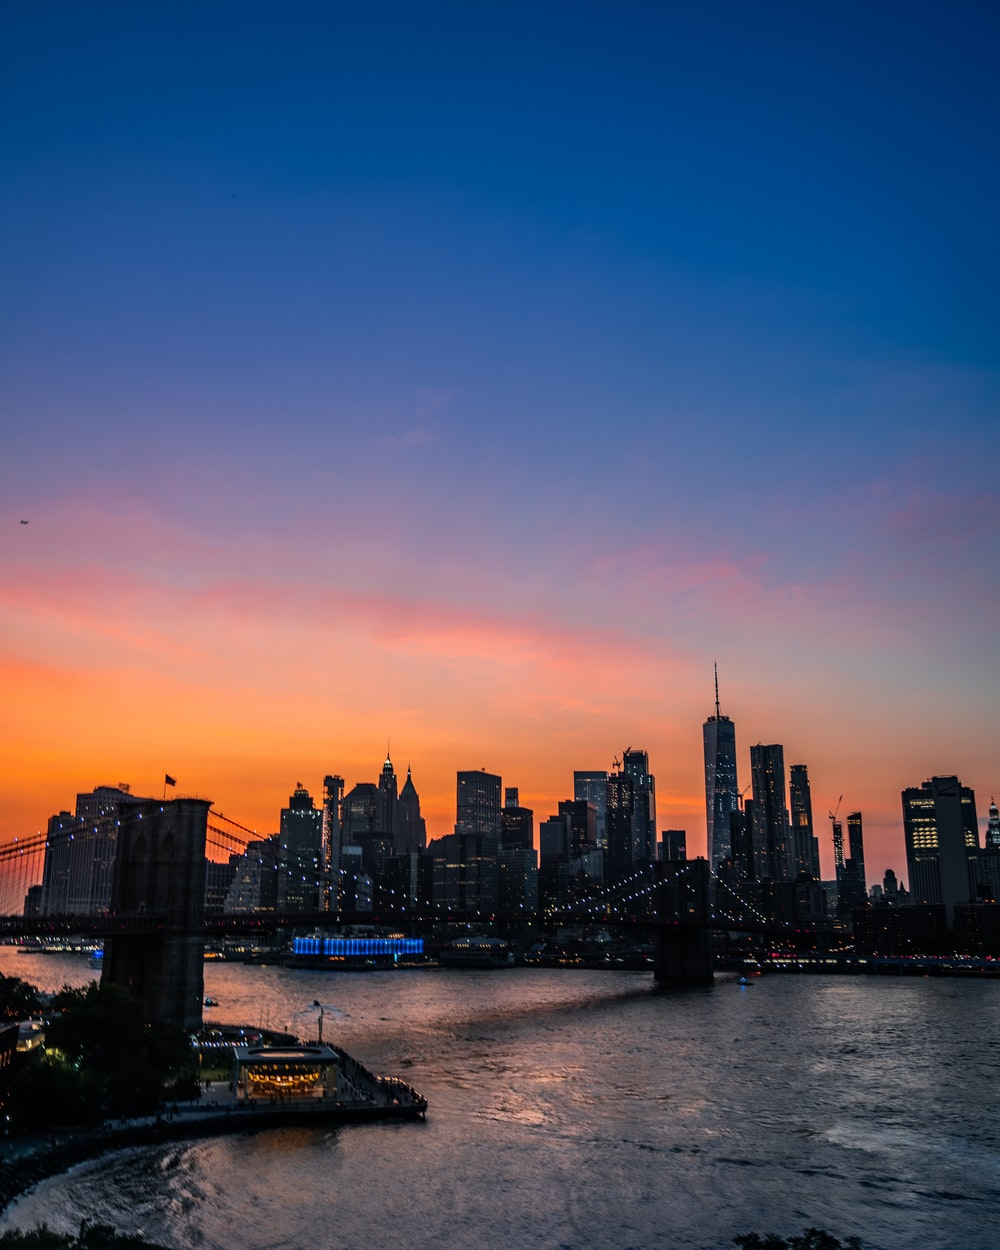 Best City Sunset Pictures Hd Download Free Images On Unsplash